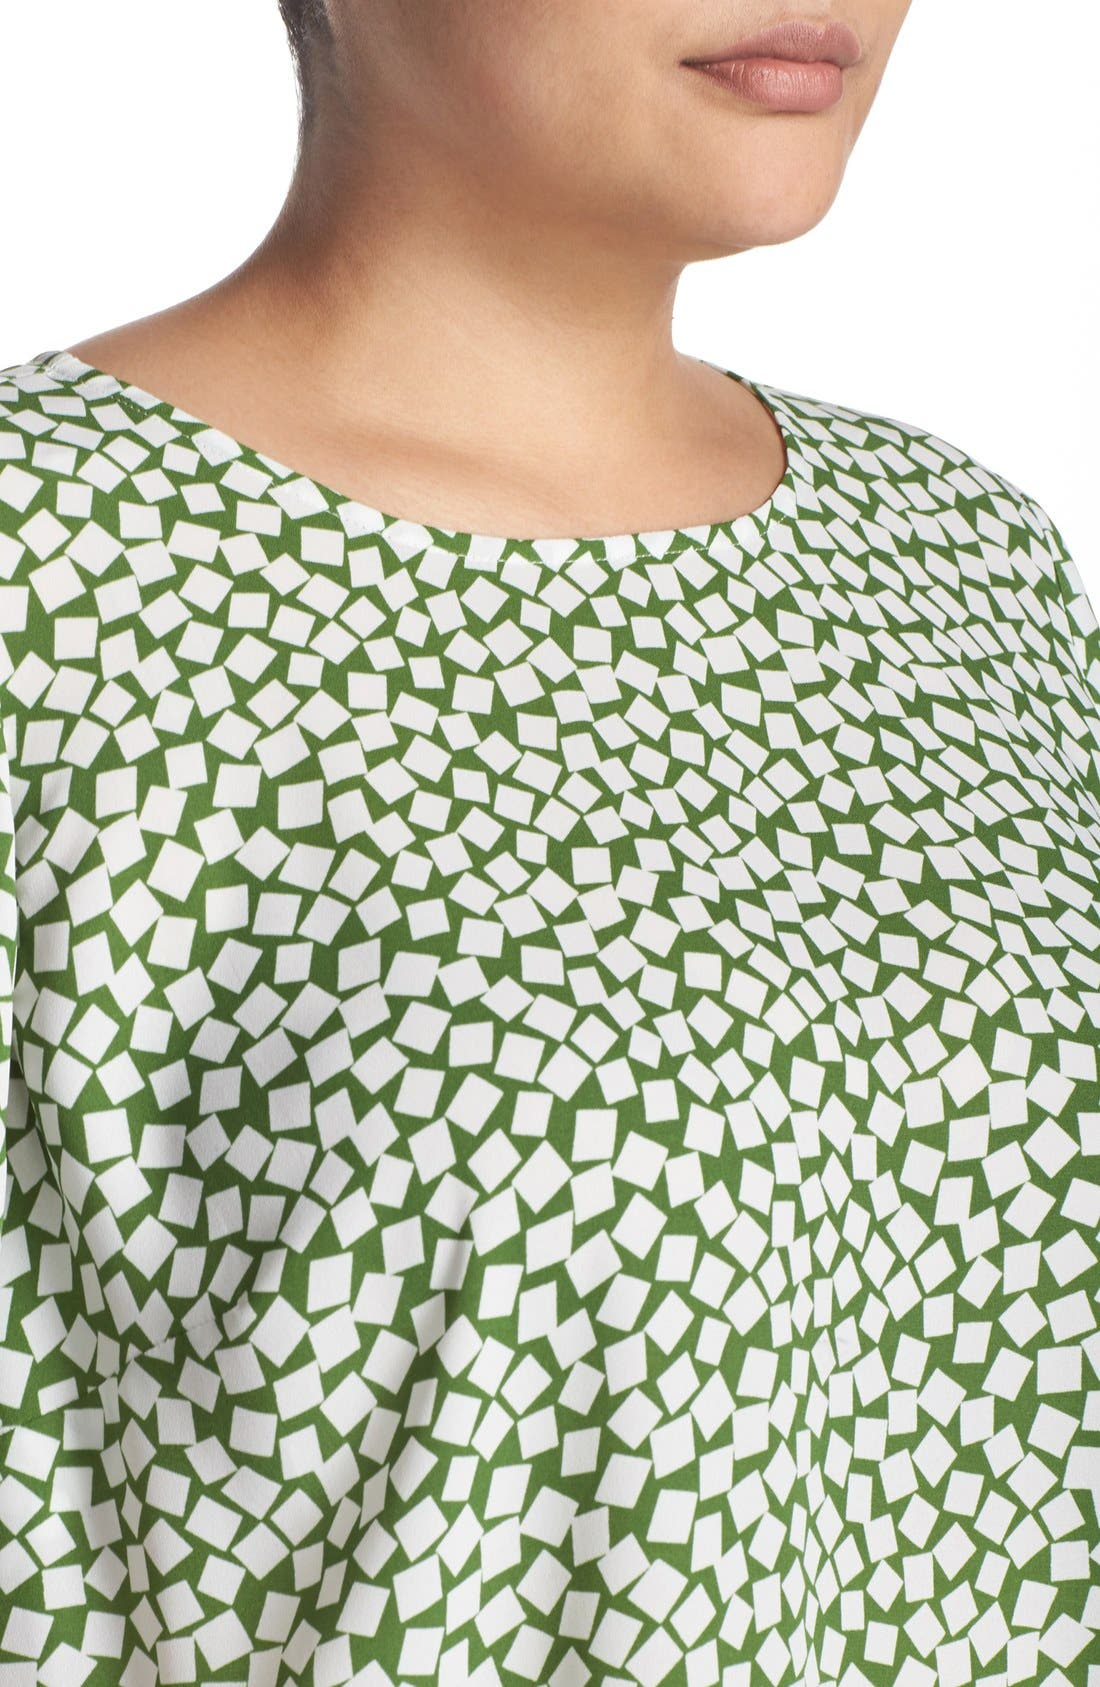 Alternate Image 4  - Vince Camuto 'Falling Cubes' Print Short Sleeve High/Low Blouse (Plus Size)